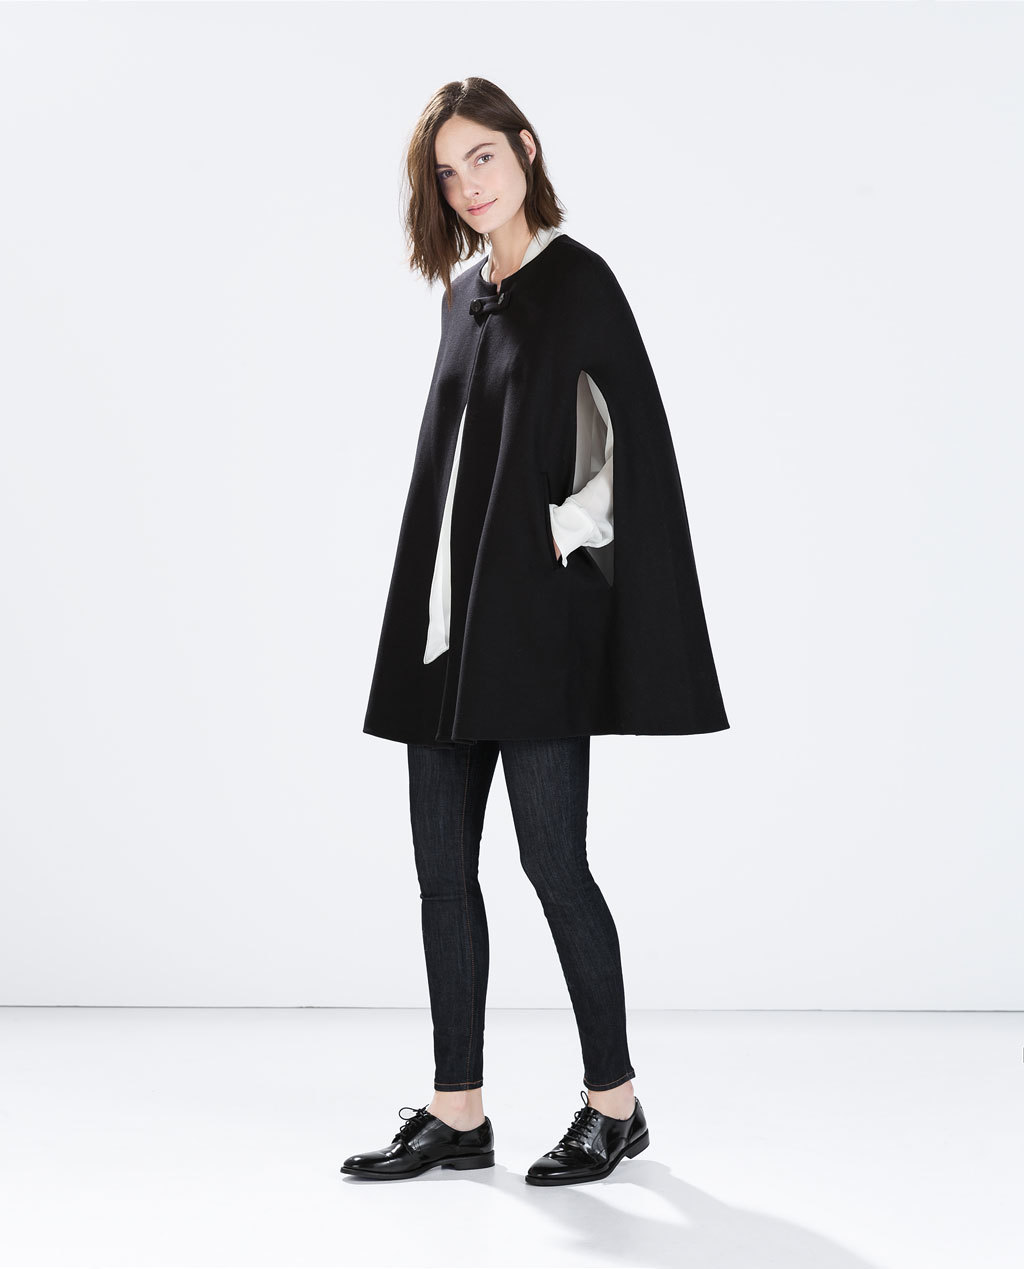 Buttoned Cape Coat - pattern: plain; collar: round collar/collarless; fit: loose; style: cape; length: mid thigh; predominant colour: black; occasions: casual, evening, creative work; fibres: wool - mix; sleeve length: 3/4 length; collar break: high; texture group: woven bulky/heavy; sleeve style: cape/poncho sleeve; trends: outerwear chic; season: a/w 2014